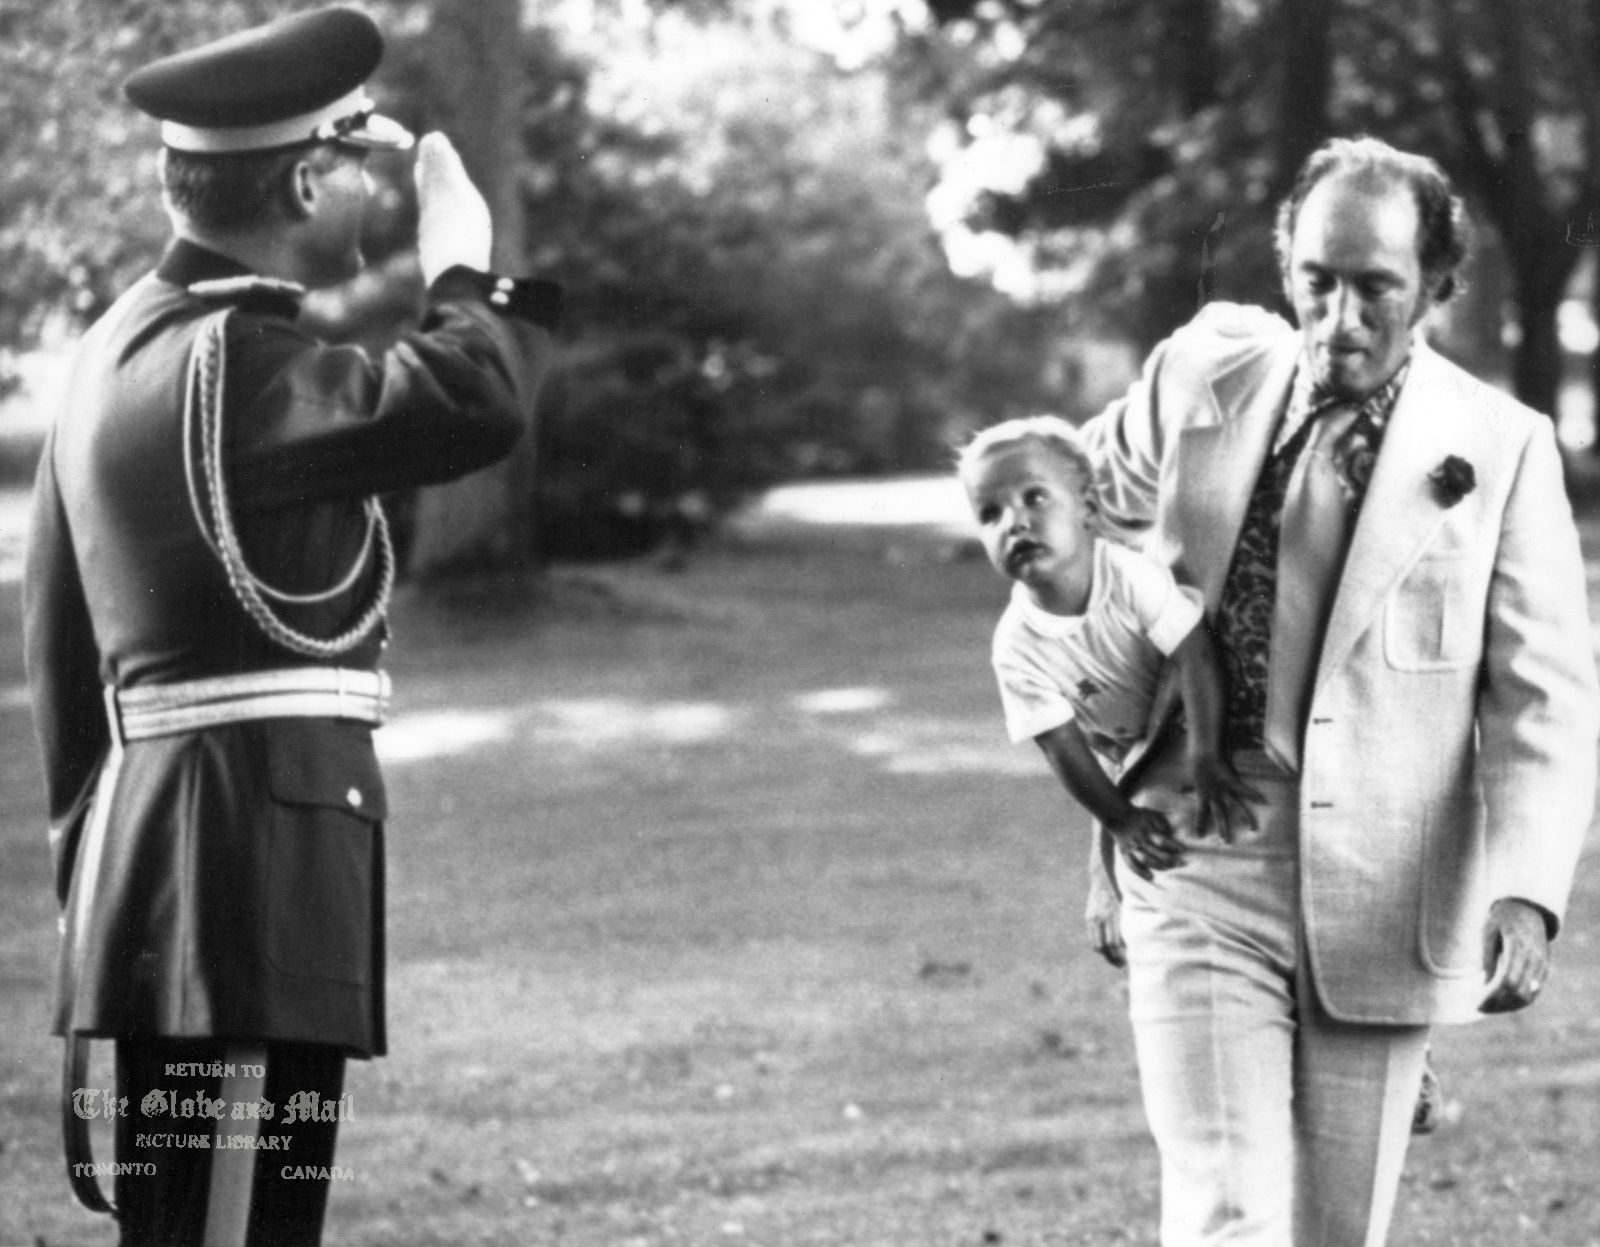 The notes transcribed from the back of this photograph are as follows: Prime Minister Pierre Trudeau walks towards the camera, cradling a young Justin under his arm like a football, while at left a uniformed RCMP officer performs a smart salute at Government House in Ottawa, August 10, 1973. Photo by Peter Bregg / CP